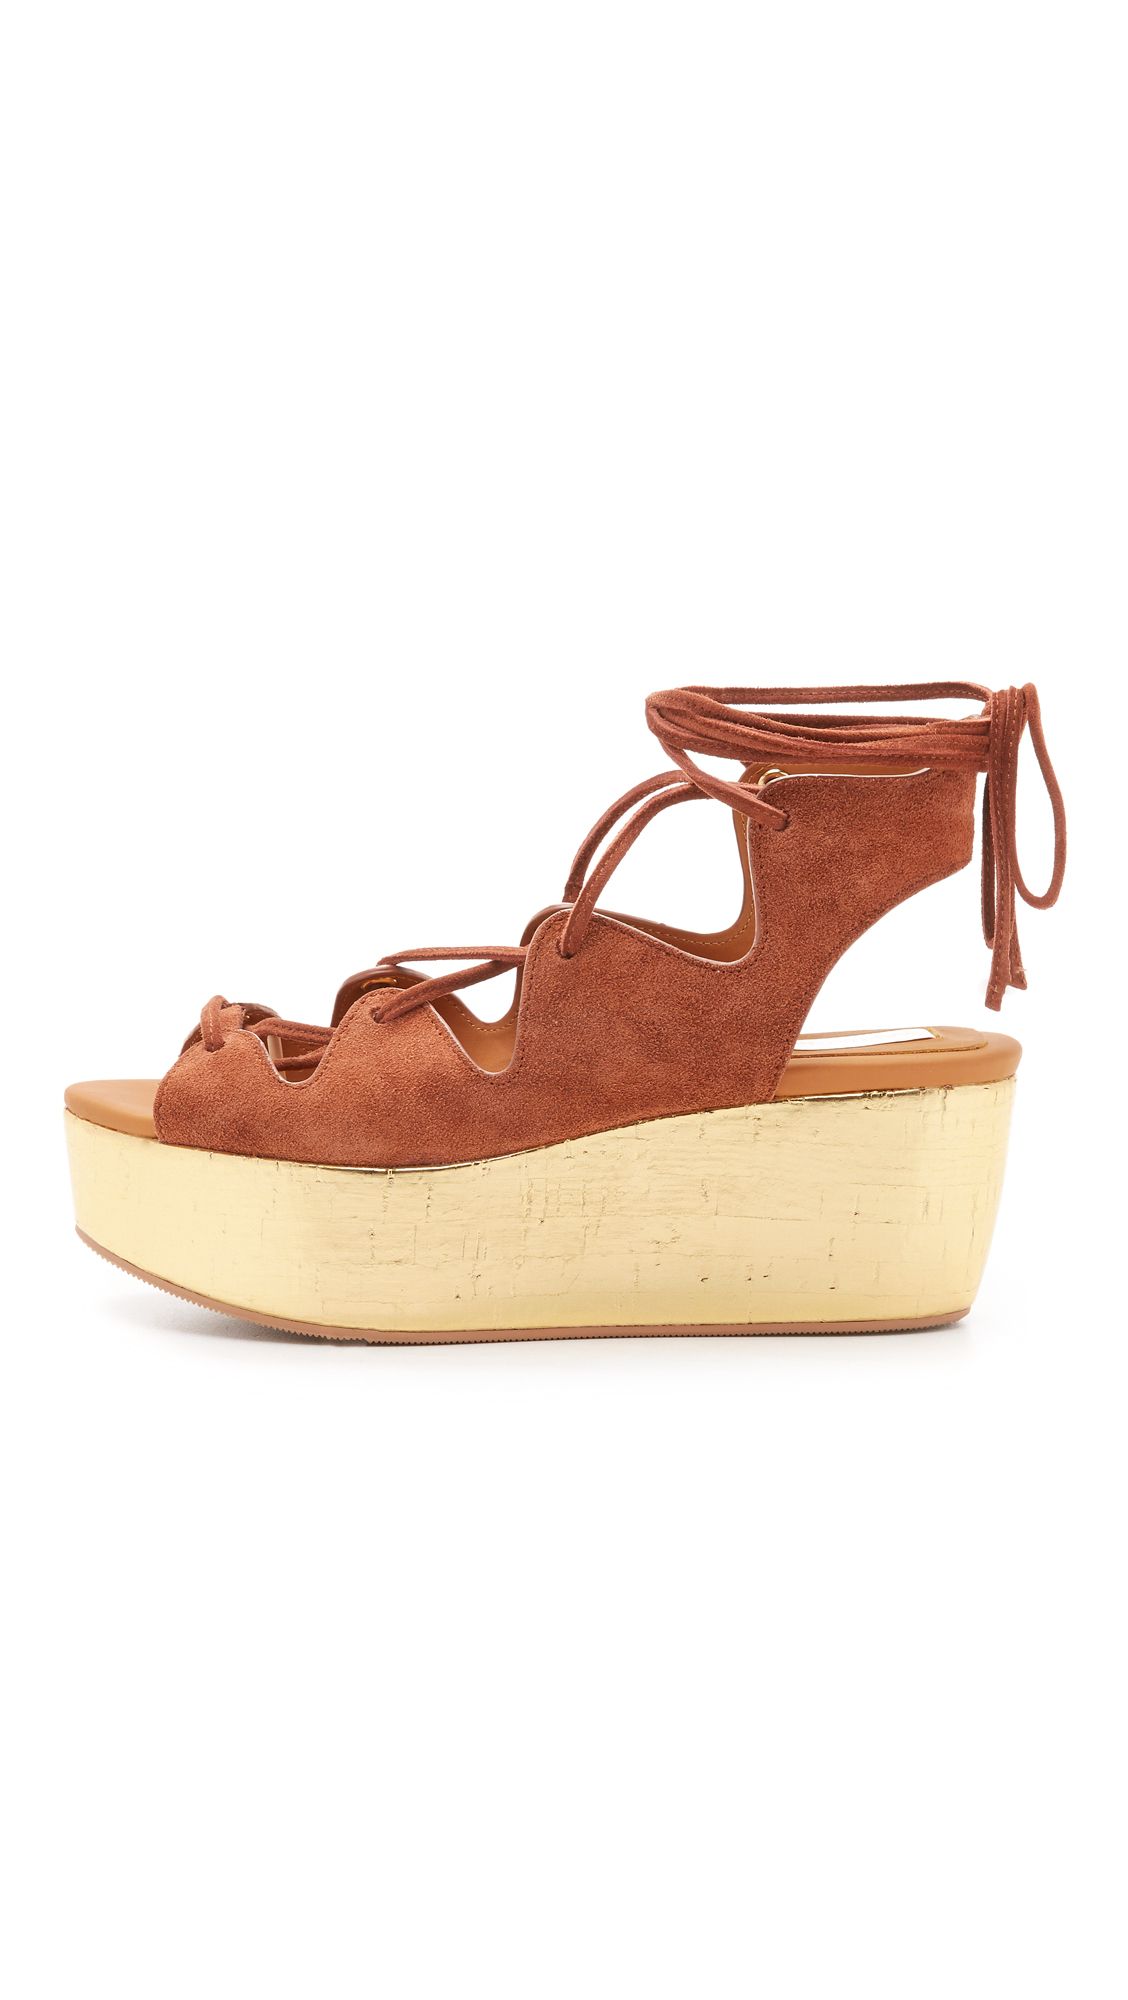 ae6b915037d Lyst - See By Chloé Liana Platform Lace Up Sandals in Brown